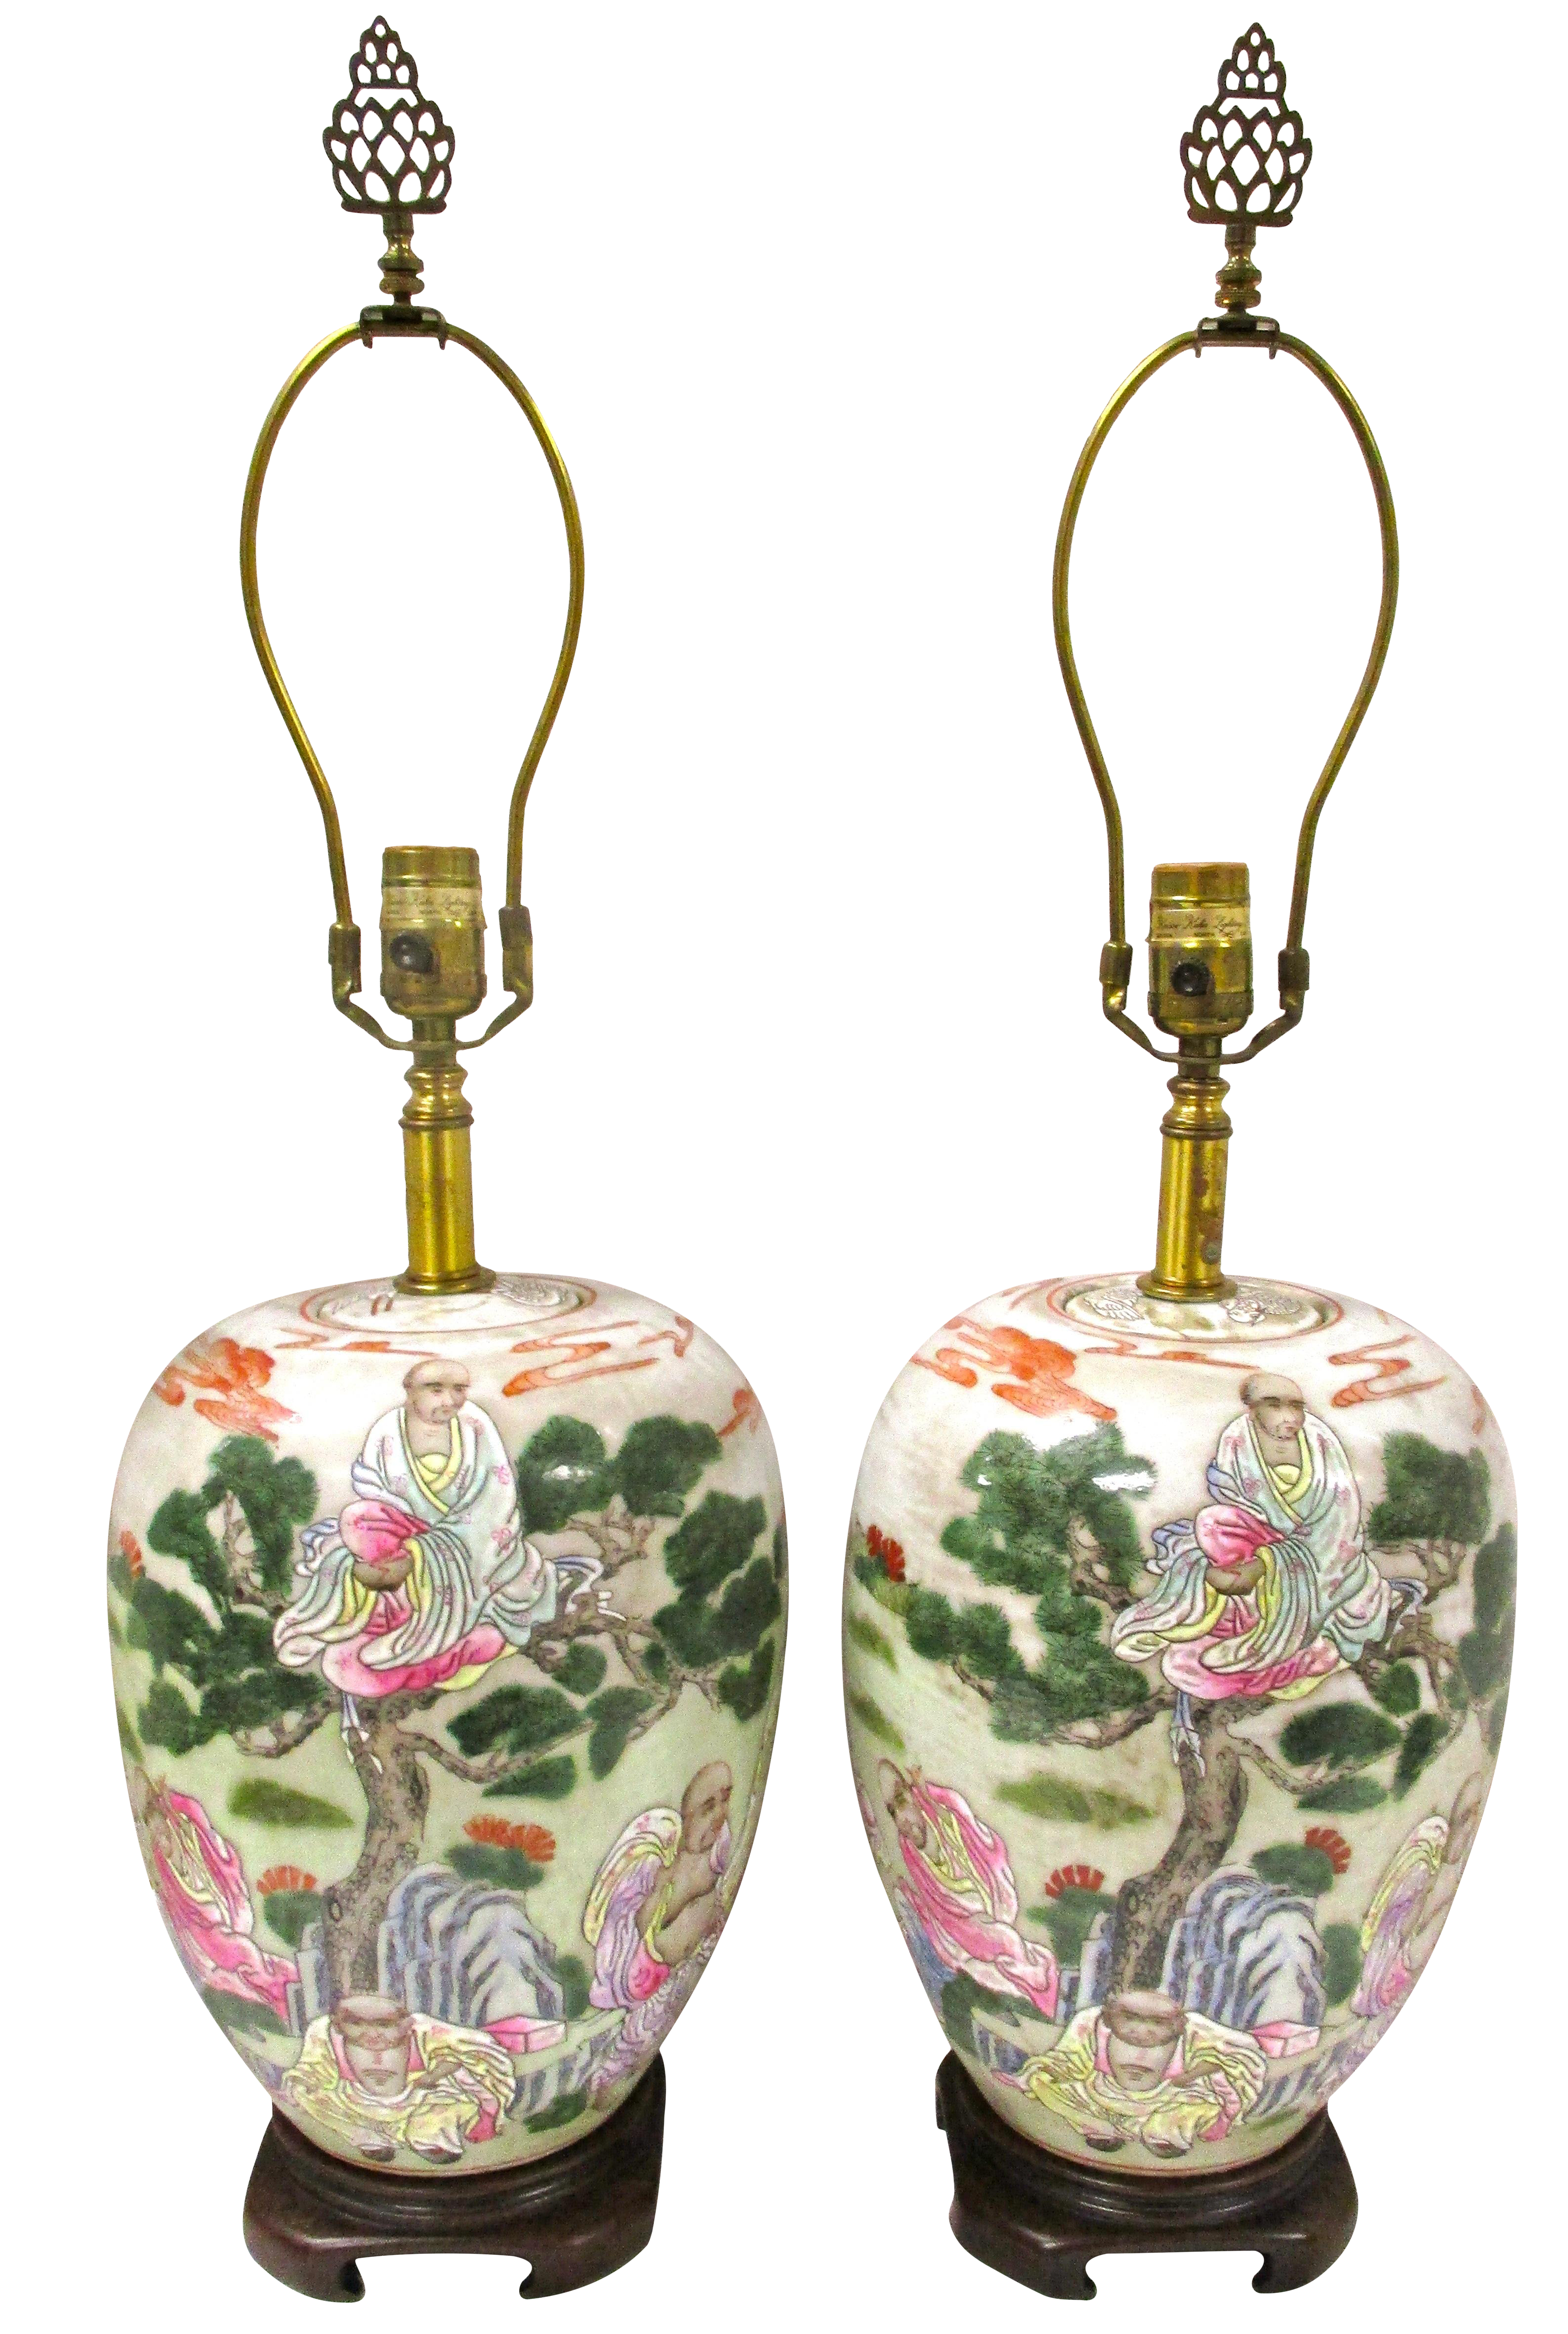 Chinese Ginger Jar Lamps A Pair Chairish : chinese ginger jar lamps a pair 4685aspectfitampwidth640ampheight640 from www.chairish.com size 640 x 640 jpeg 41kB